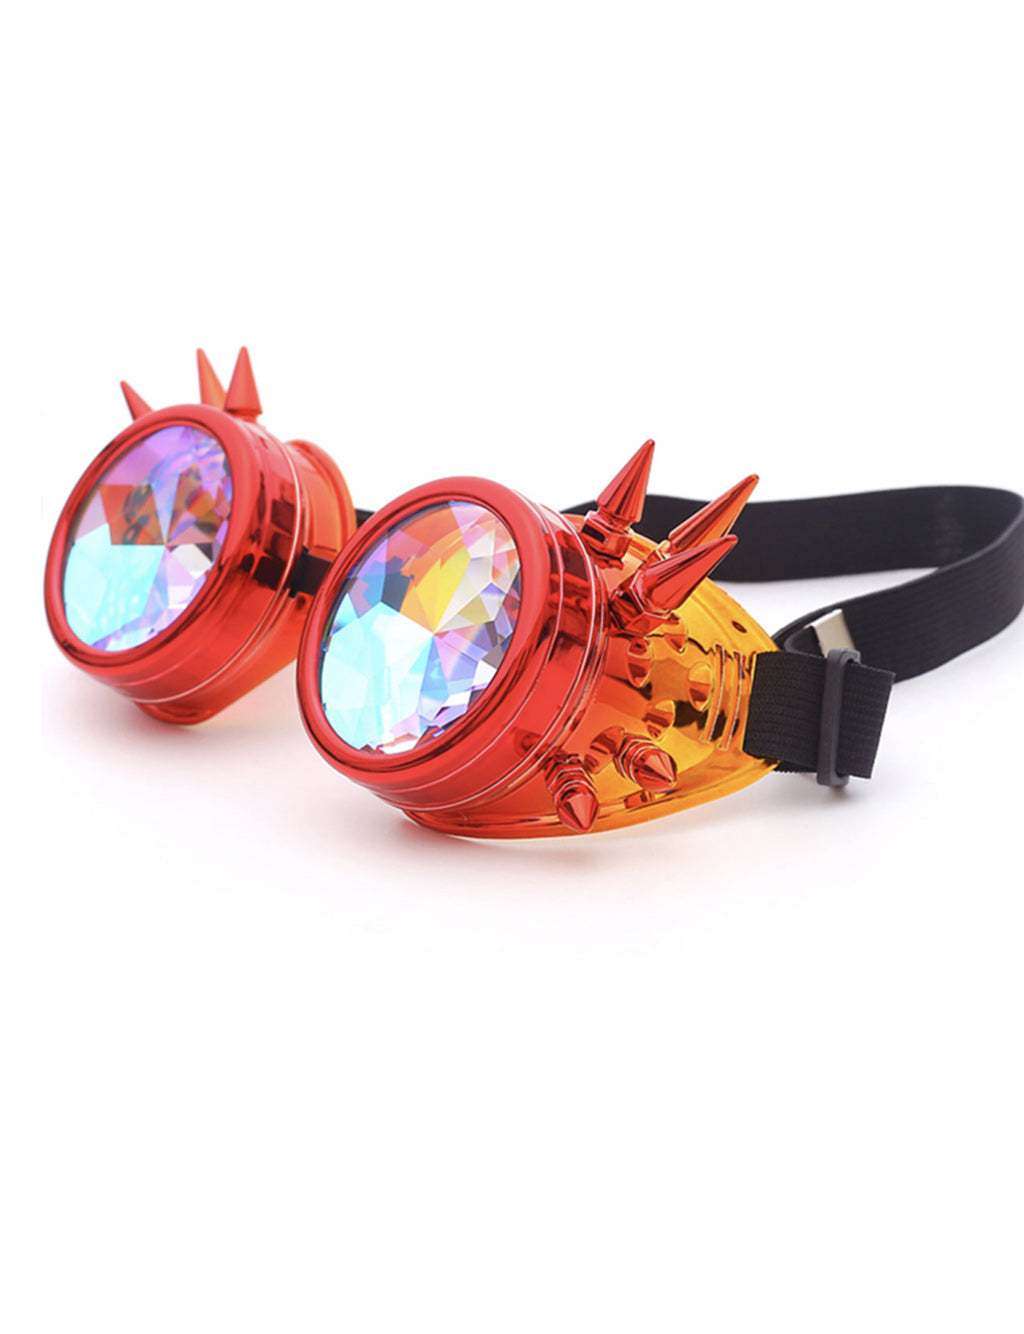 MAD MAX GOGGLES - RED/ORANGE